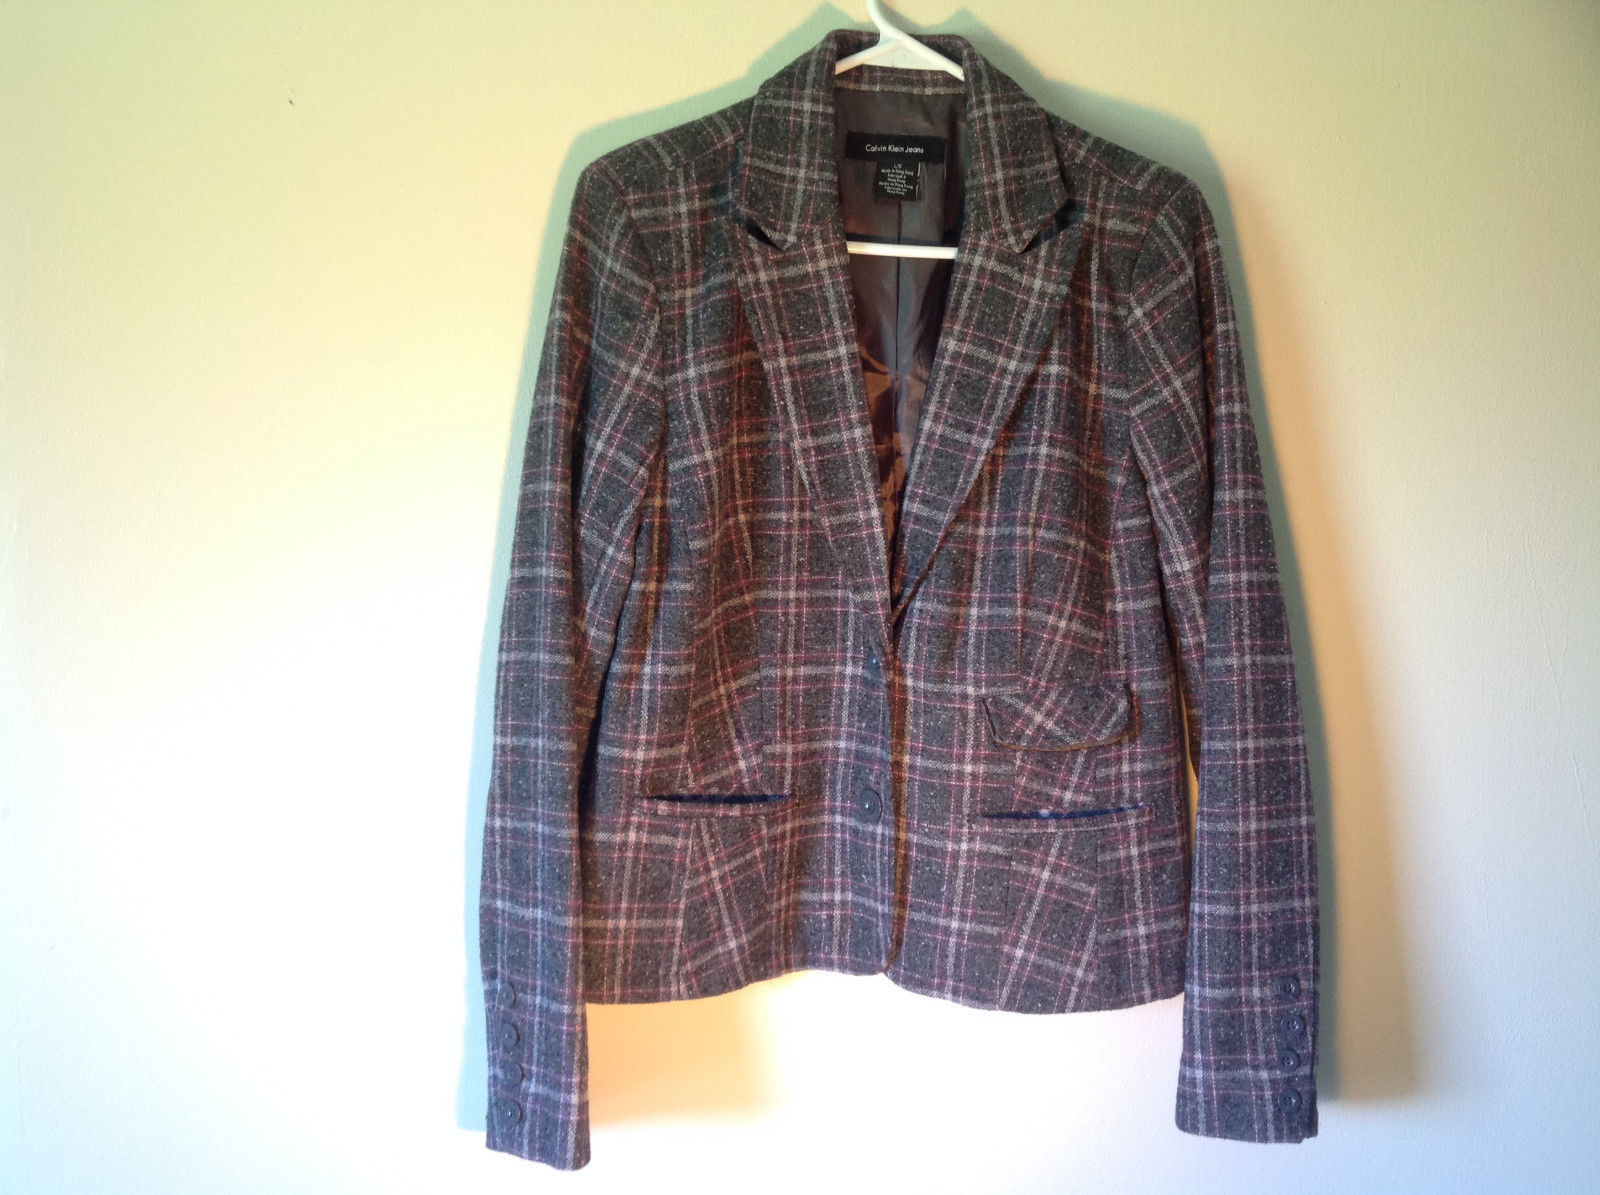 Calvin Klein Gray White and Purple Plaid Blazer 3 Front Pockets Size Large